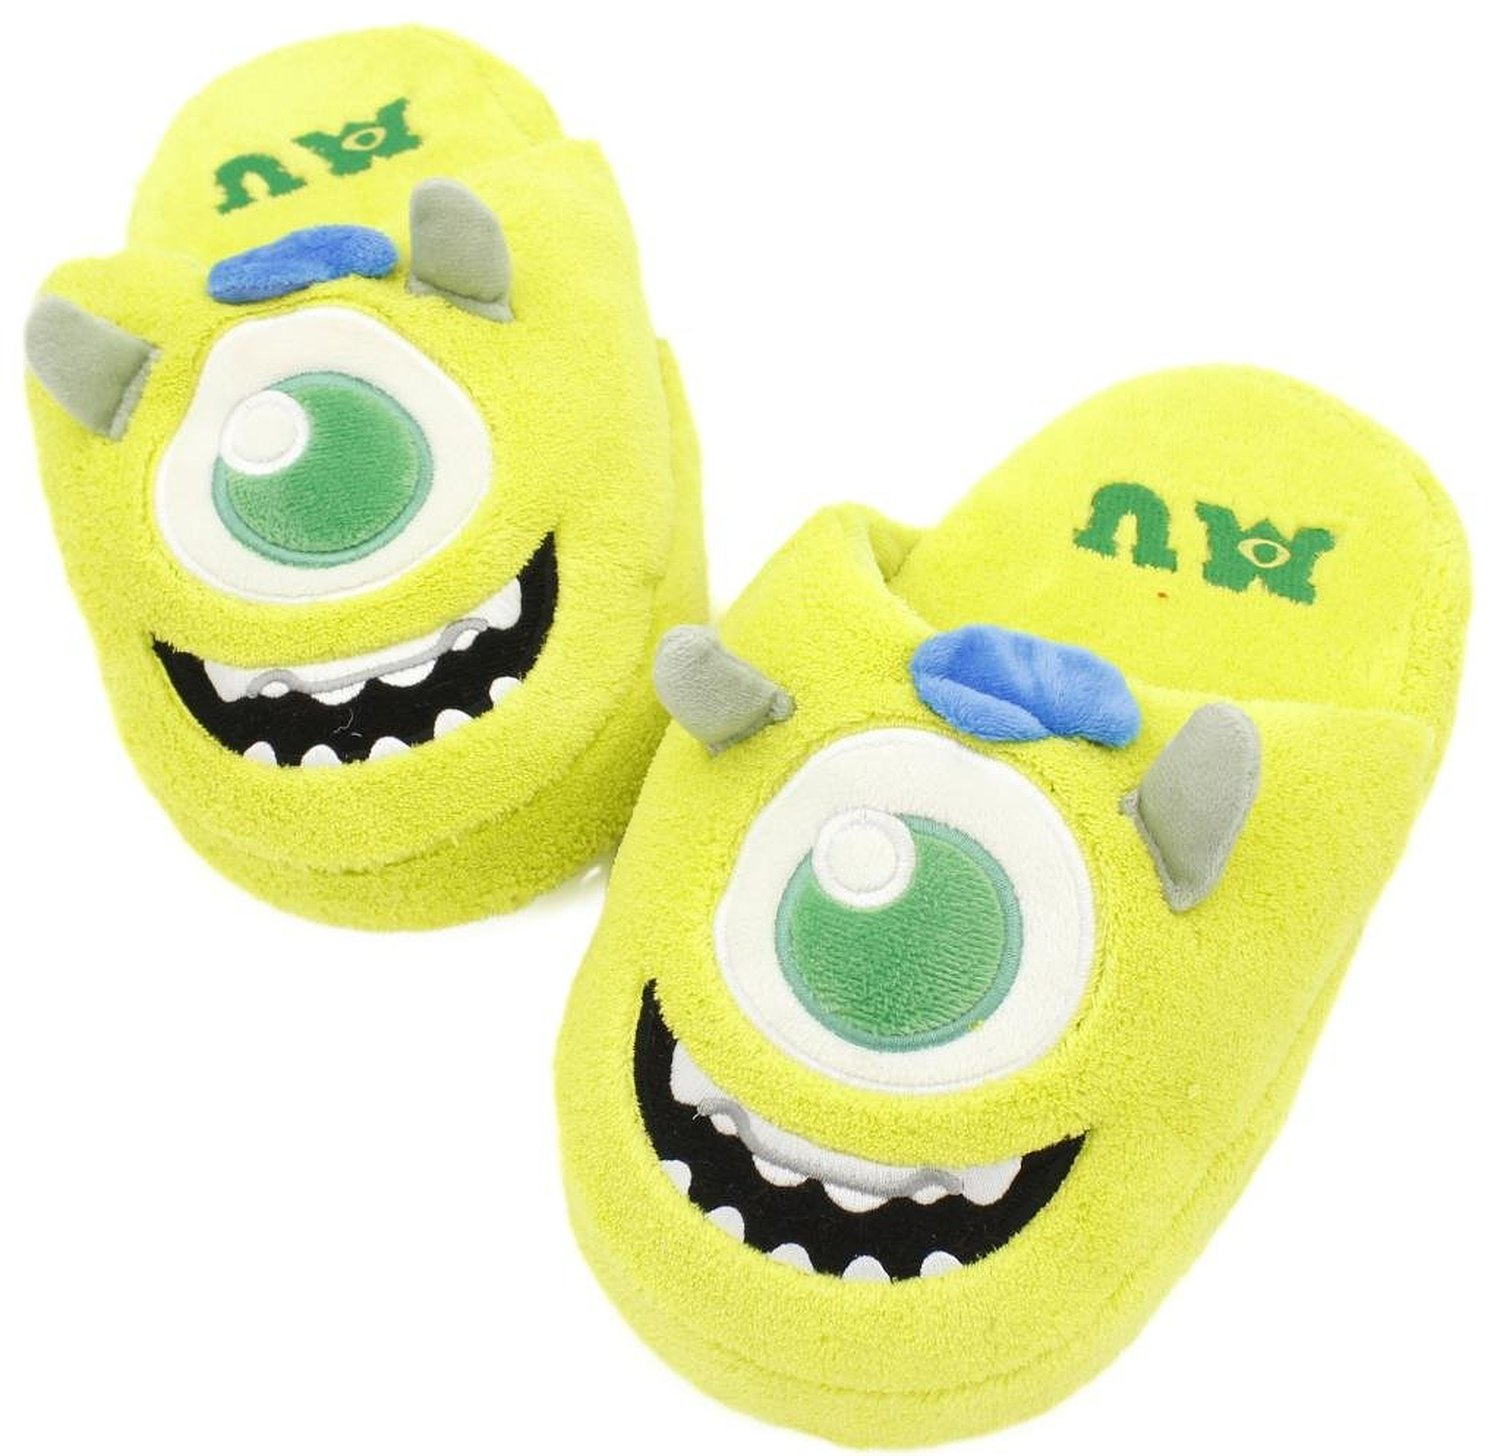 Amazon.com: monsters inc: women's mike plush slippers size 7